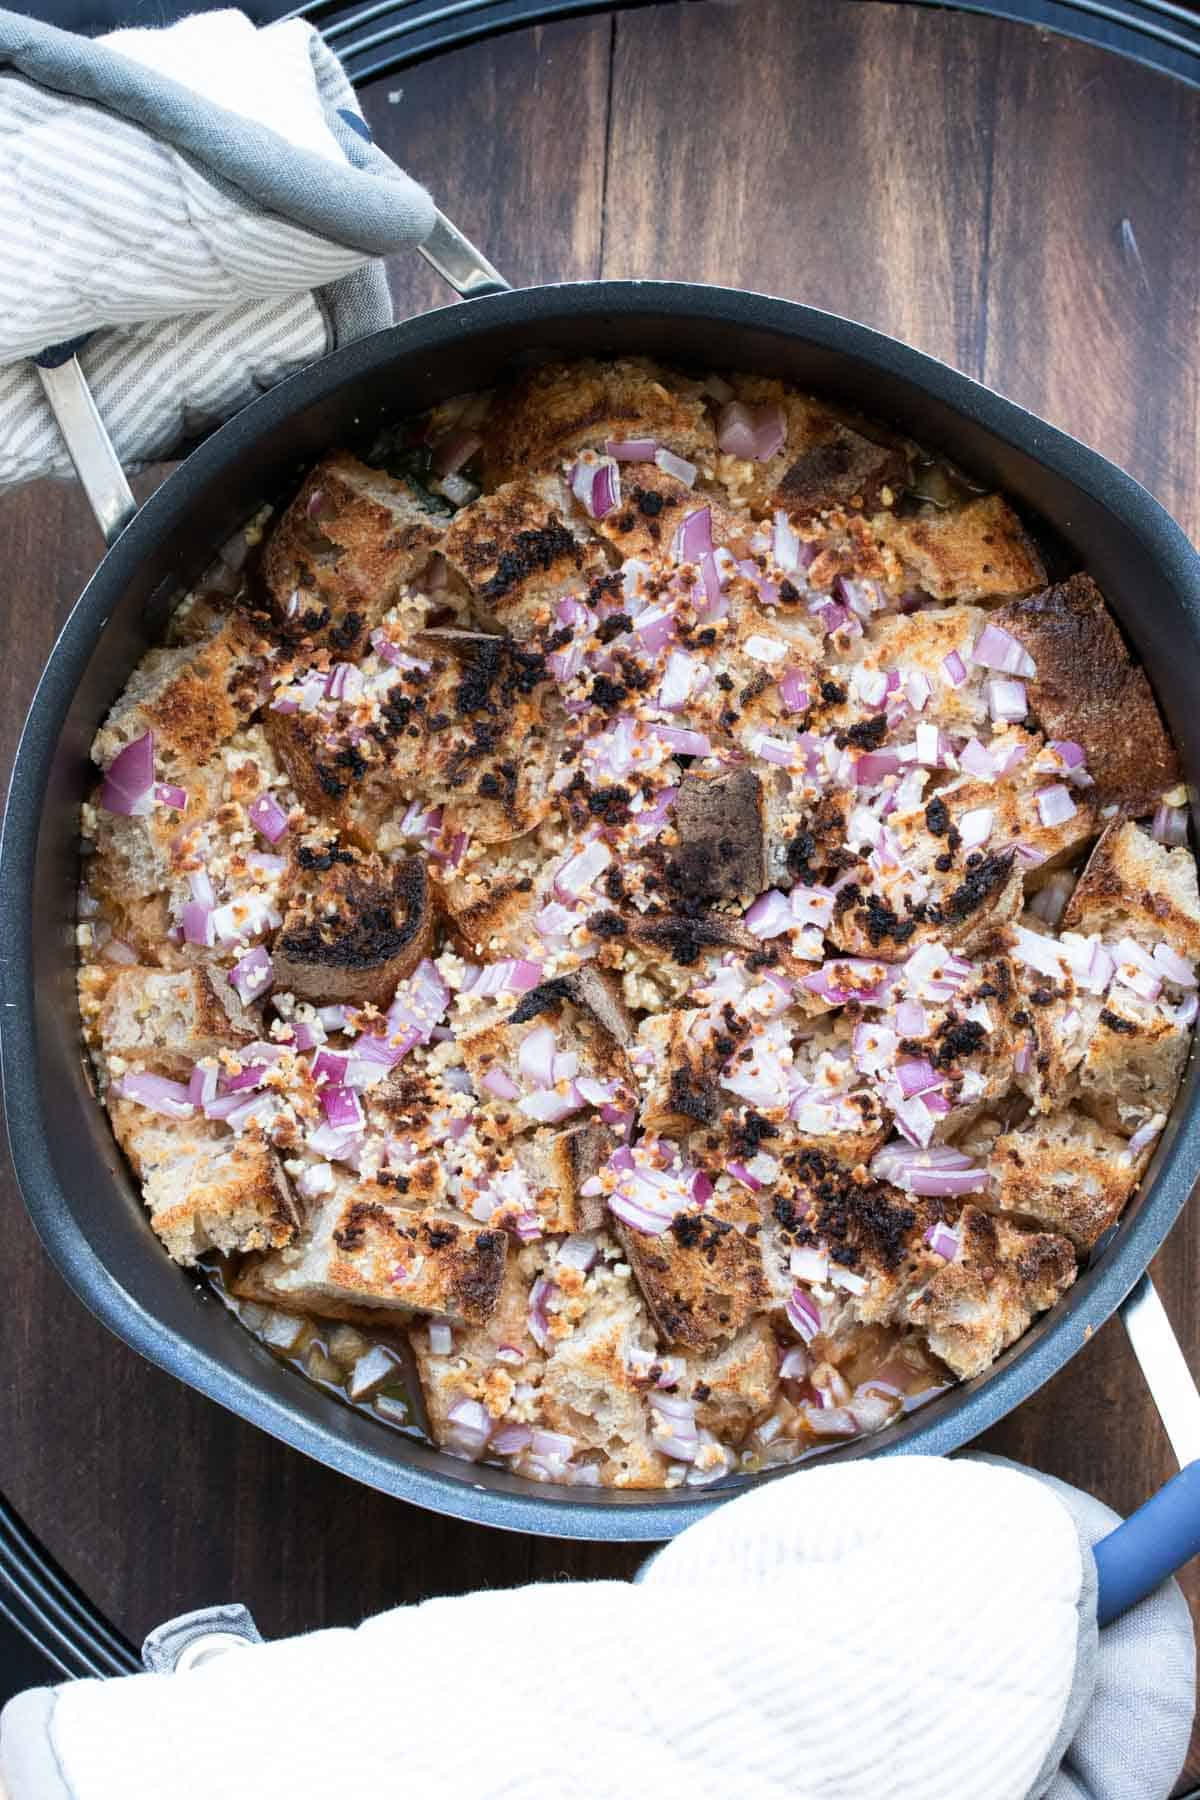 Crisp bread cubes with charred red onion on the top of soup in a pot